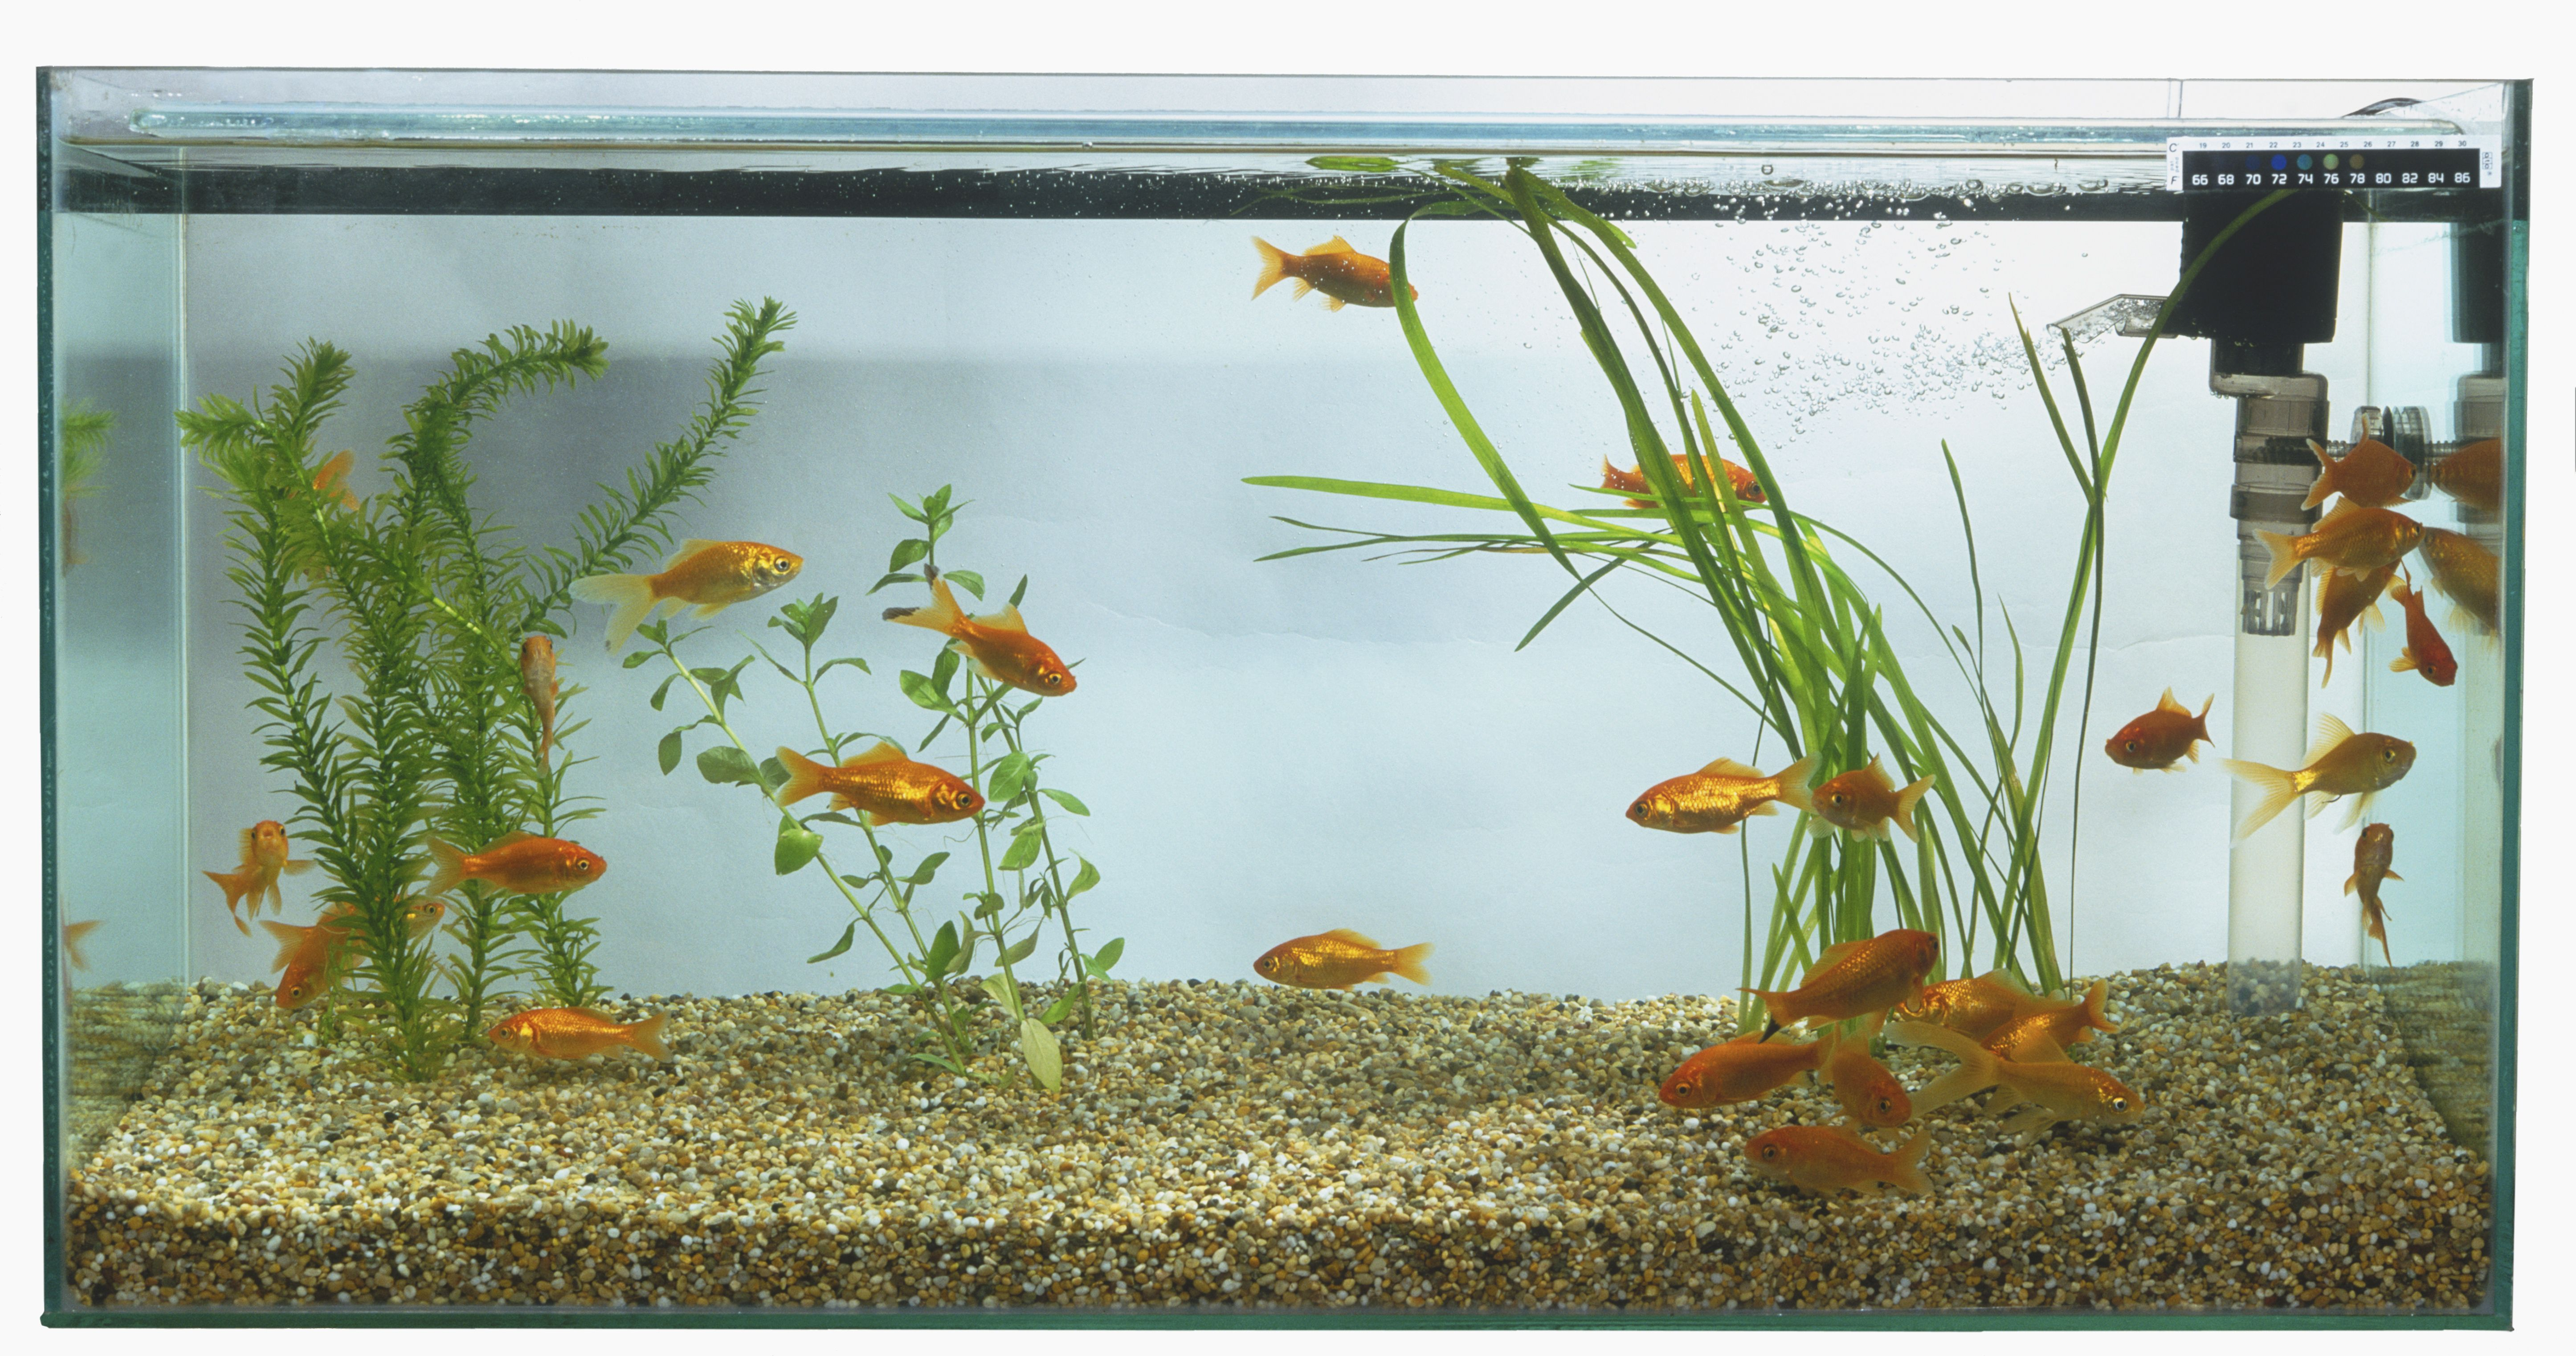 How to Choose an Aquarium Filter System